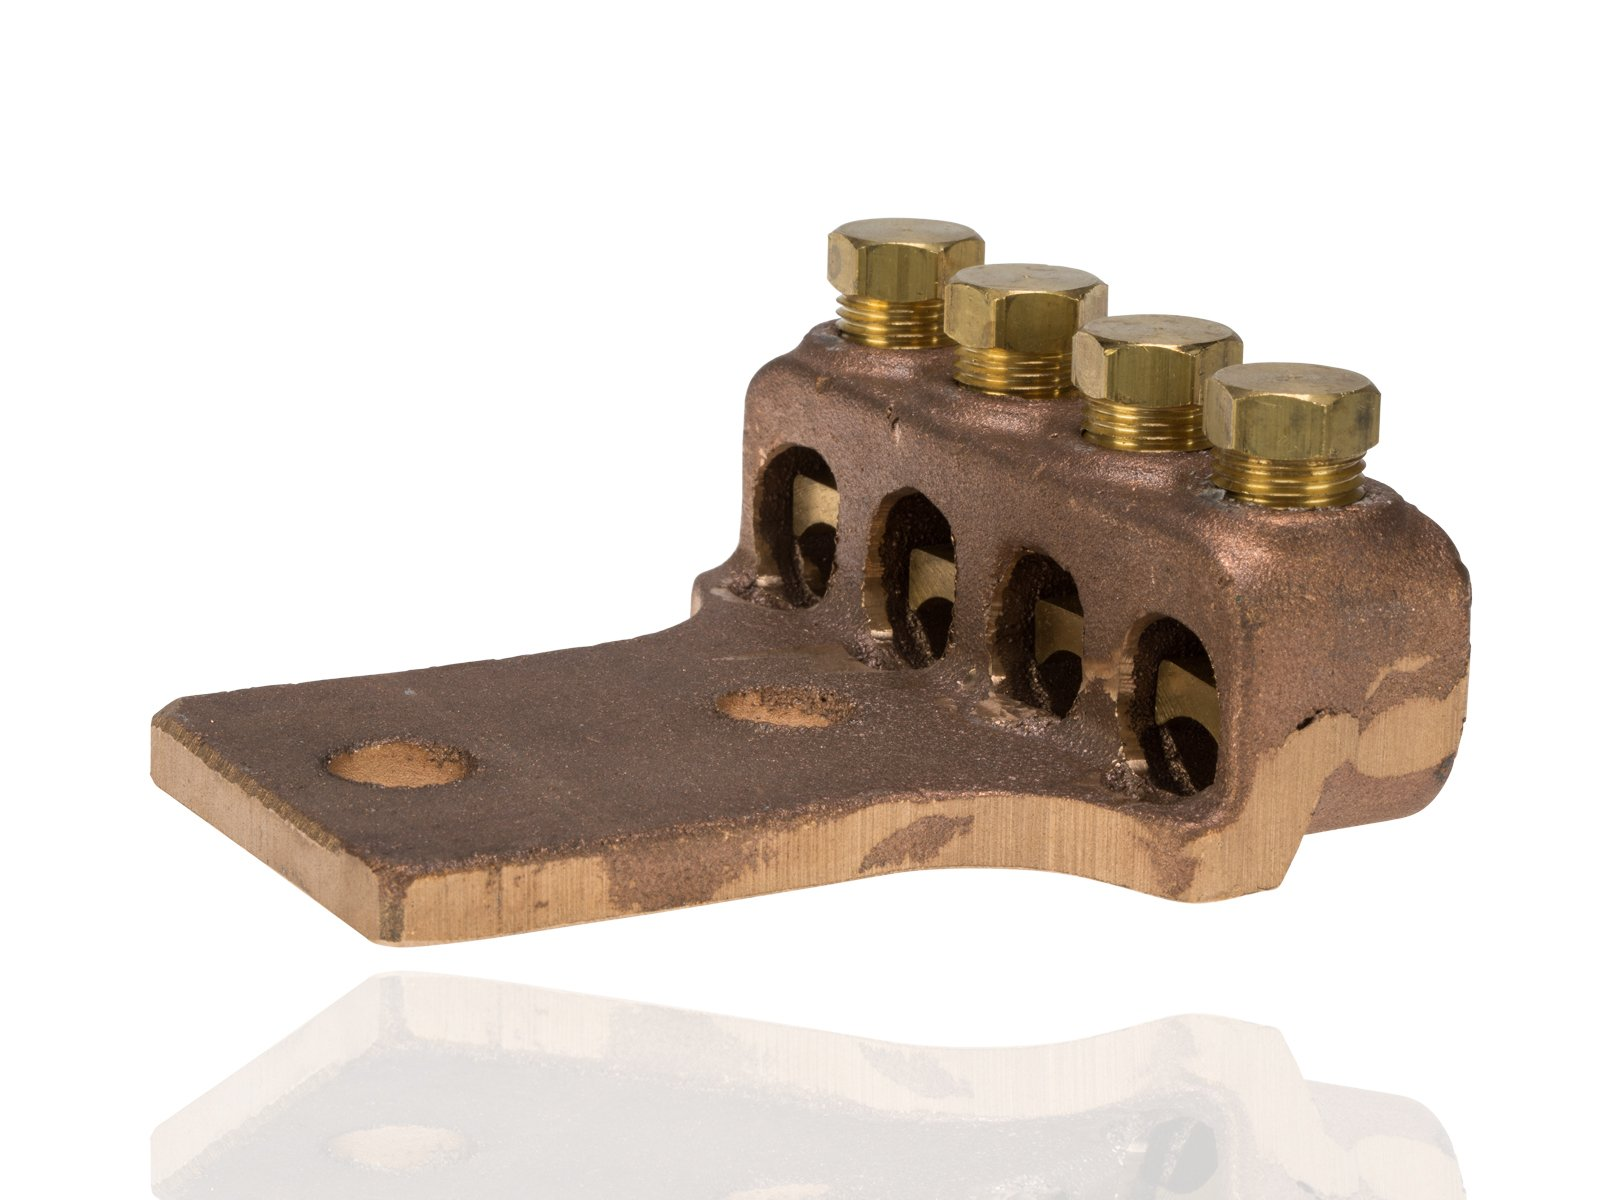 Split Bolt, Post and Tap Connector, Type TL Copper and Cast Bronze Terminal Lug, 4/0 str - 300 MCM Wire Range, 1/2'' Bolt Hole Size, 2 Holes, 1000 Amp Nec, 4'' Width, 1.25'' Height, 4.313'' Length by NSI